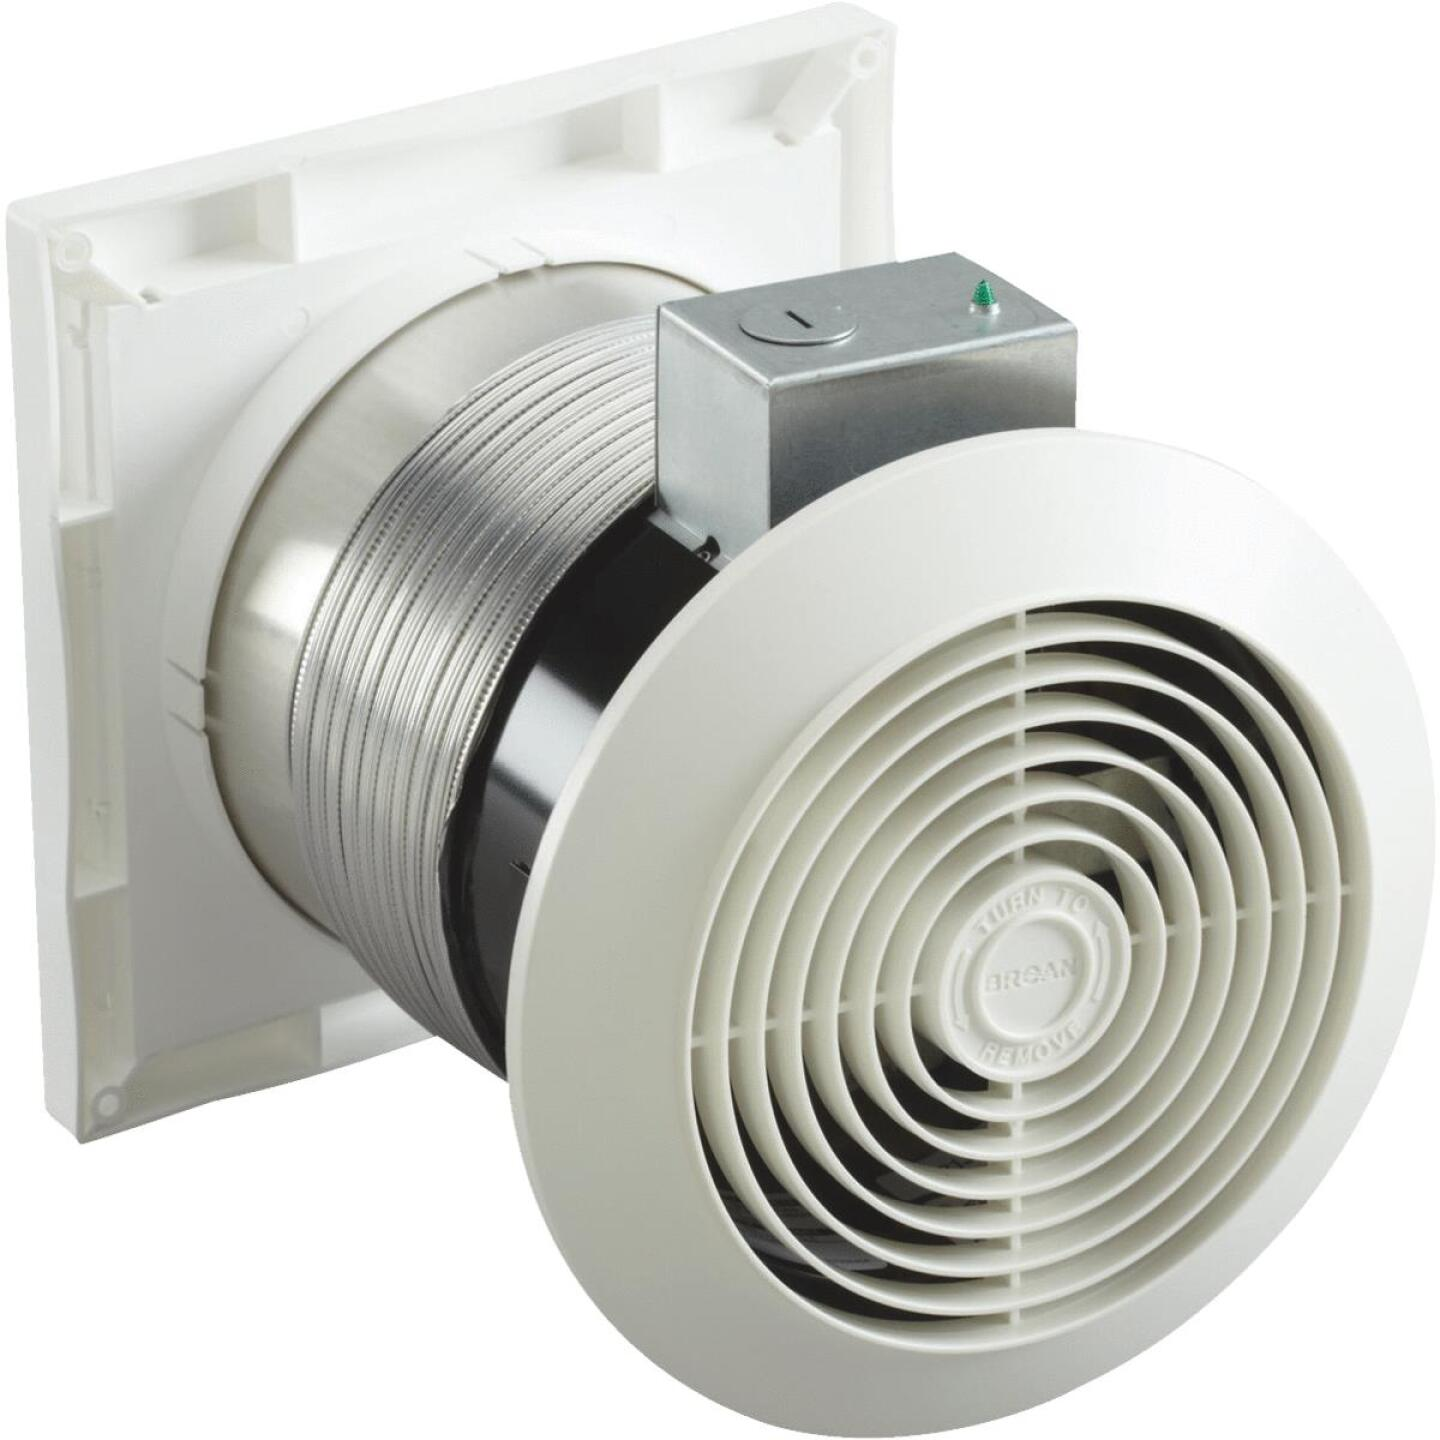 Broan 70 CFM 65 Sq. Ft. Coverage Area 3.5 Sones Wall Ventilator Image 1